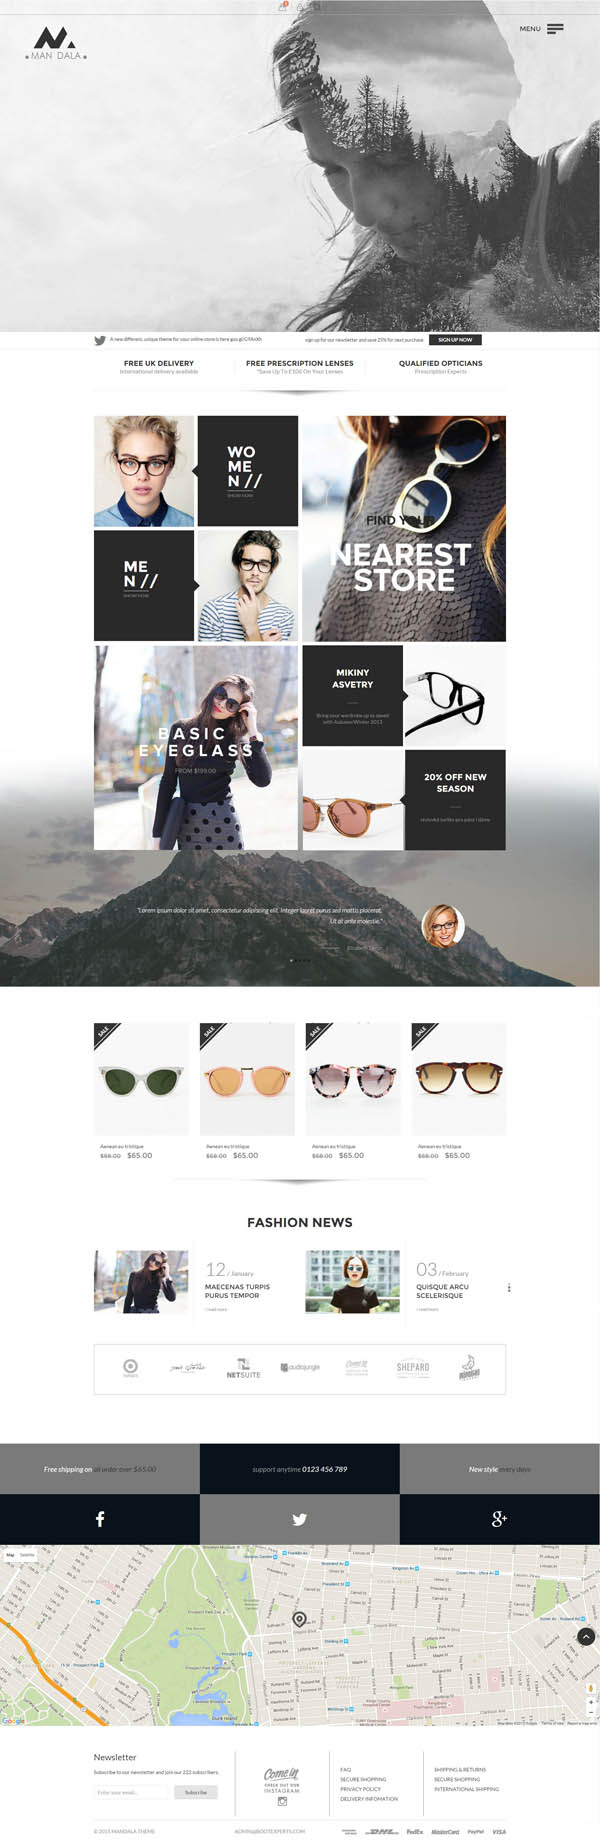 New HTML5 Website Templates (PSD & HTML) | Design | Graphic Design ...